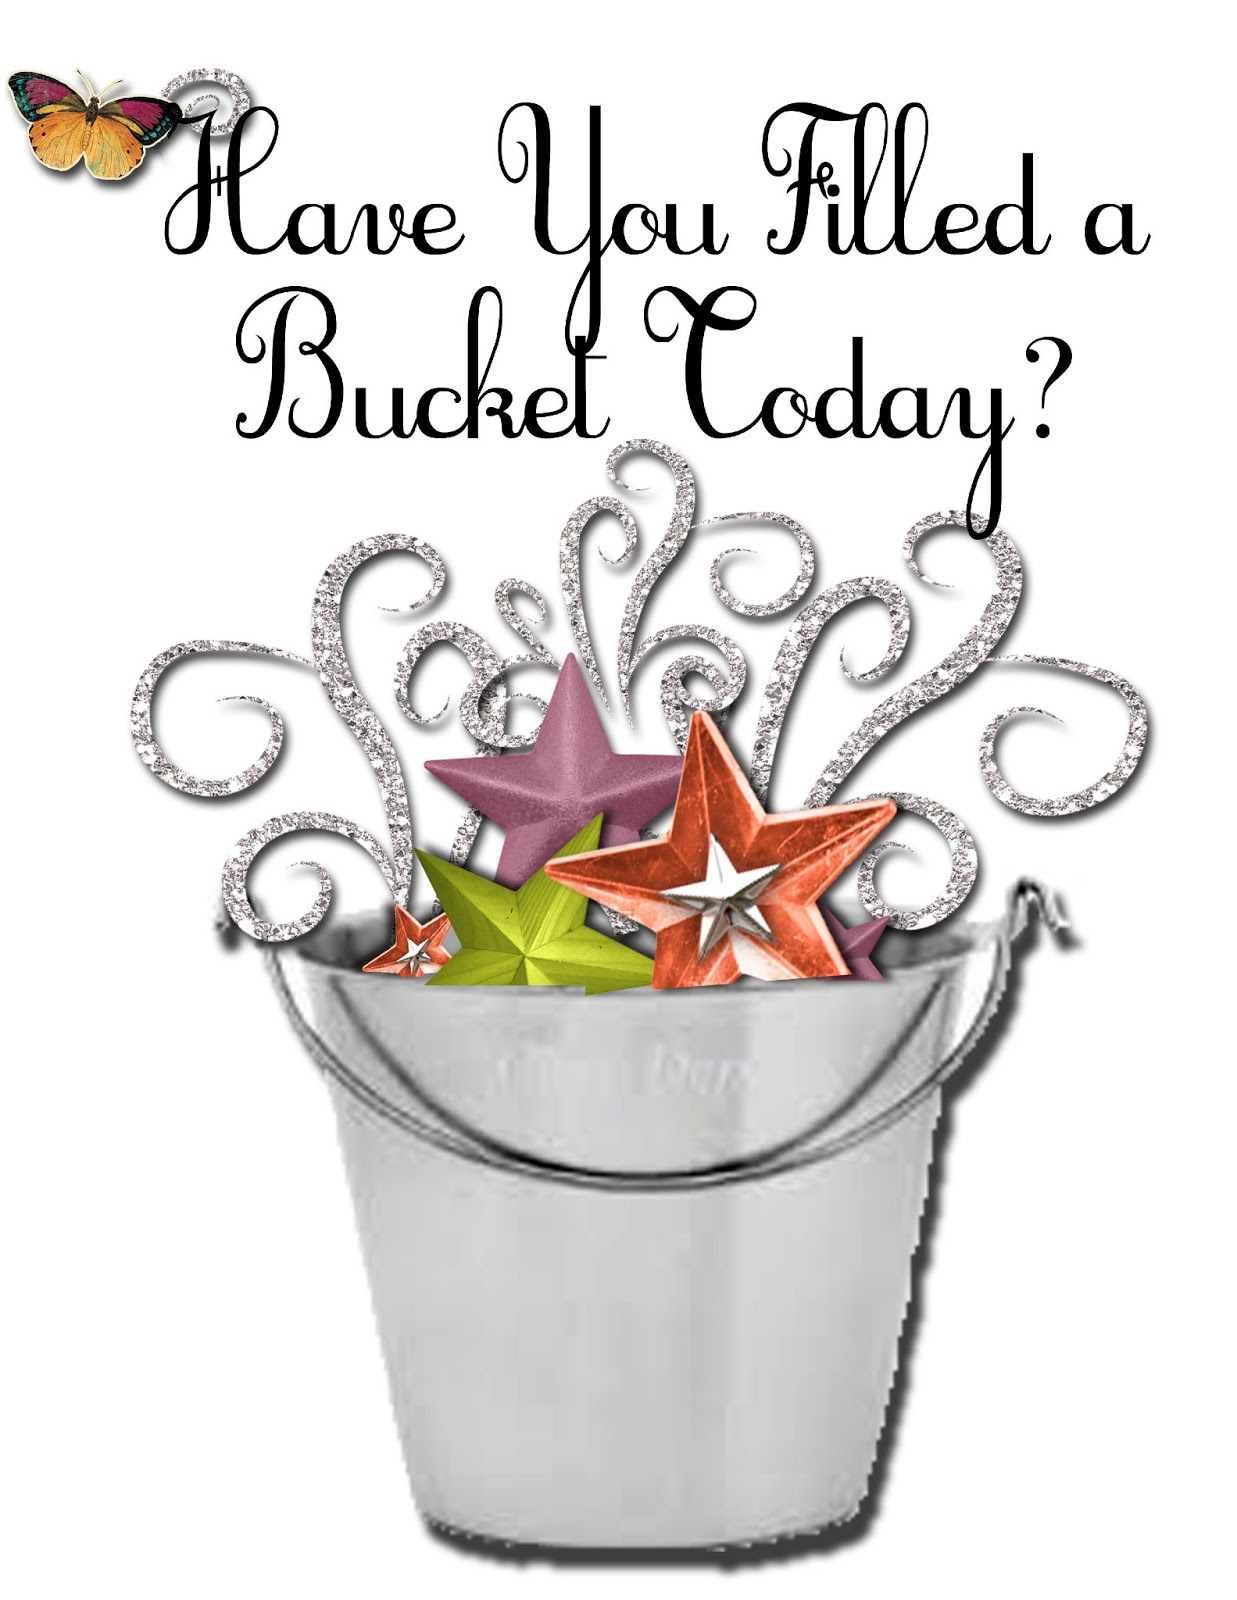 materials needed a bucket have you filled a bucket today sign provided